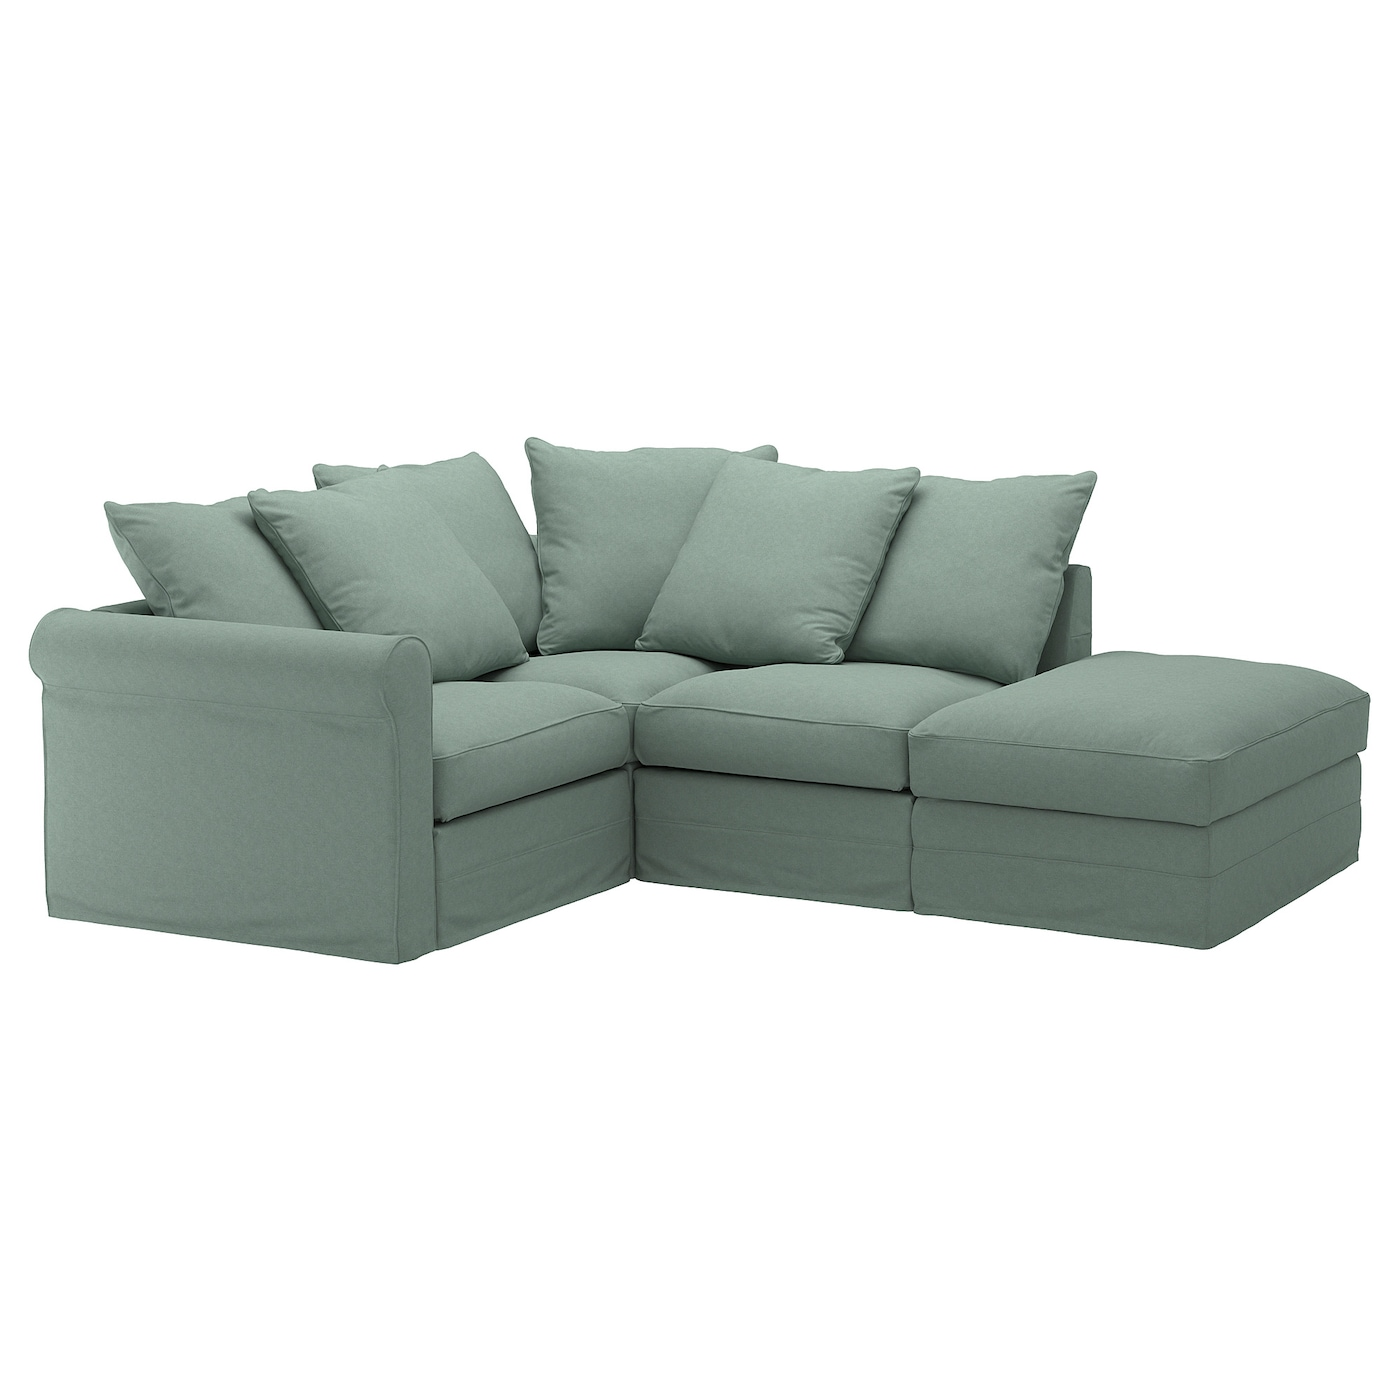 Attrayant IKEA GRÖNLID Corner Sofa, 3 Seat 10 Year Guarantee. Read About The Terms